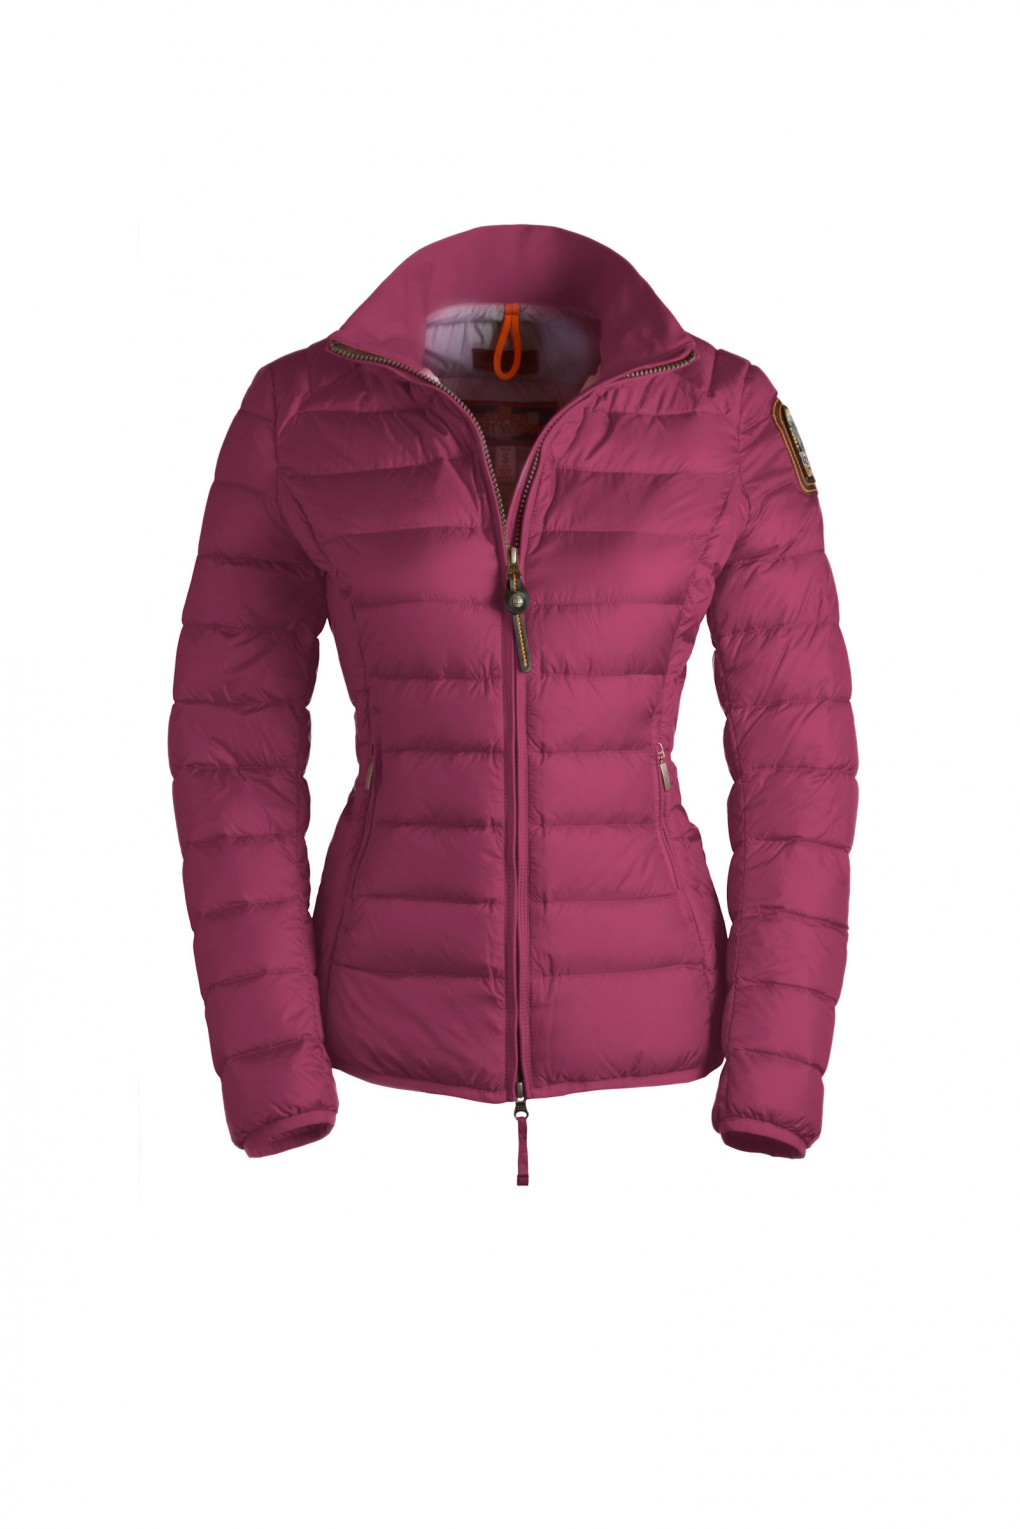 parajumpers GEENA 6 woman outerwear Fuchsia